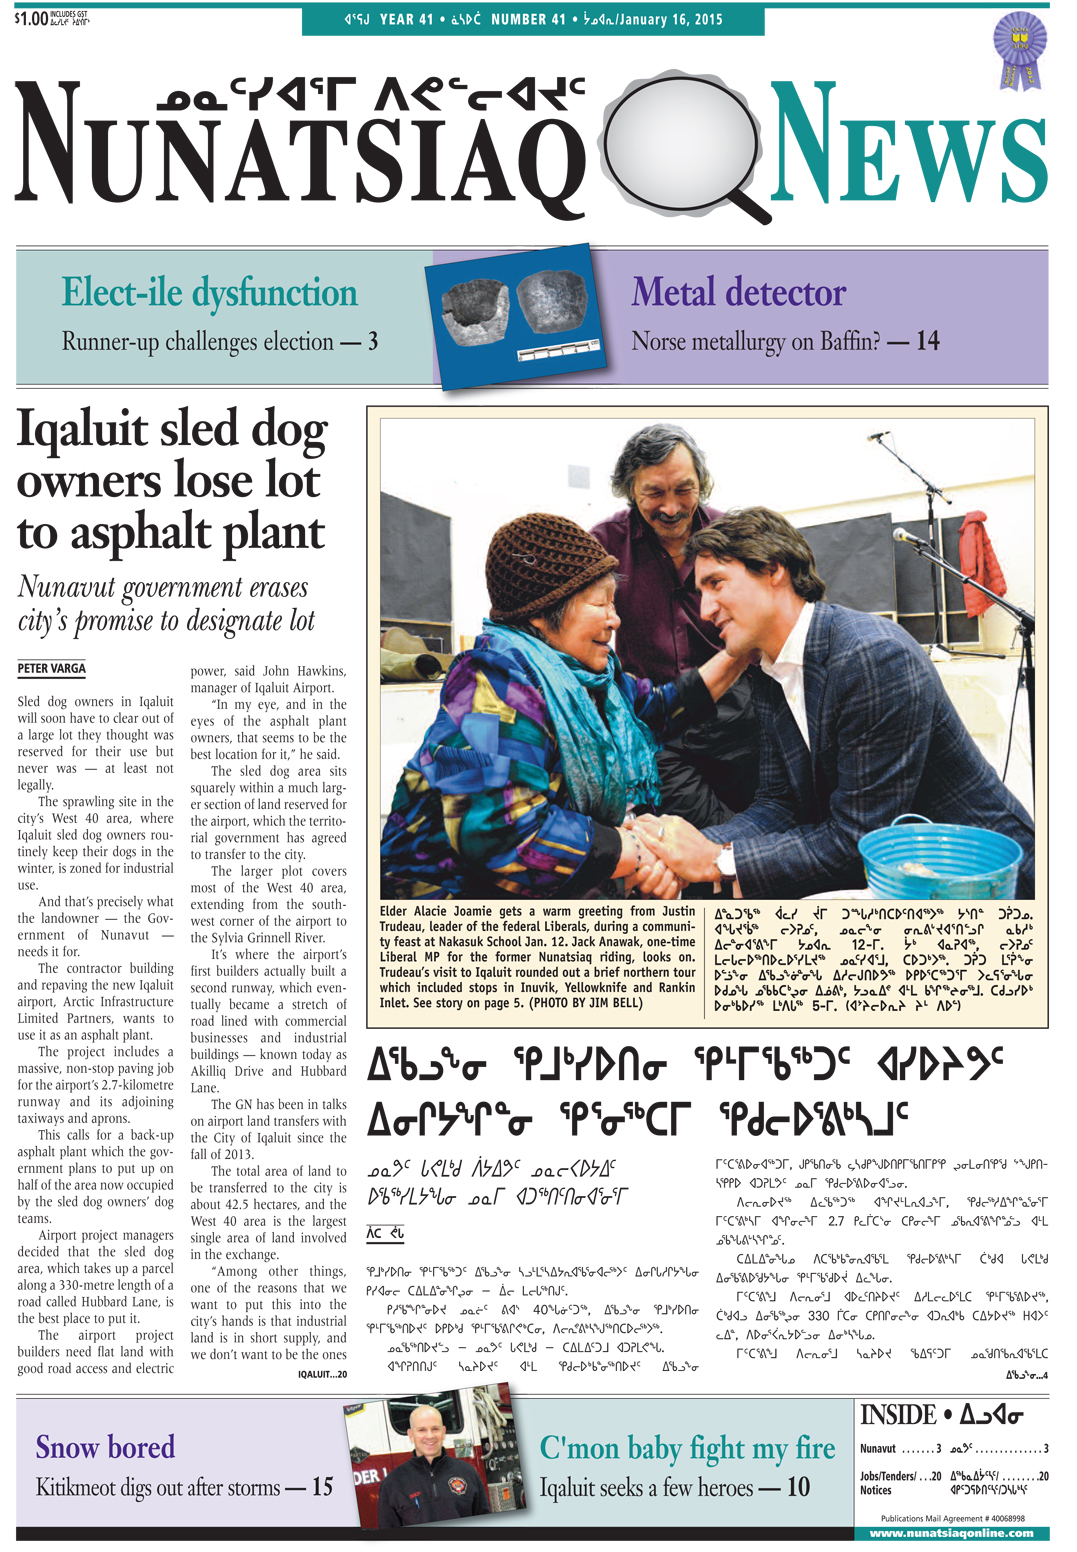 Nunatsiaq News picked up 14 nominated for this year's Quebec Community Newspaper Association's awards, including in the Best Front Page category for the newspaper's Jan. 15, 2015 print edition, pictured here.